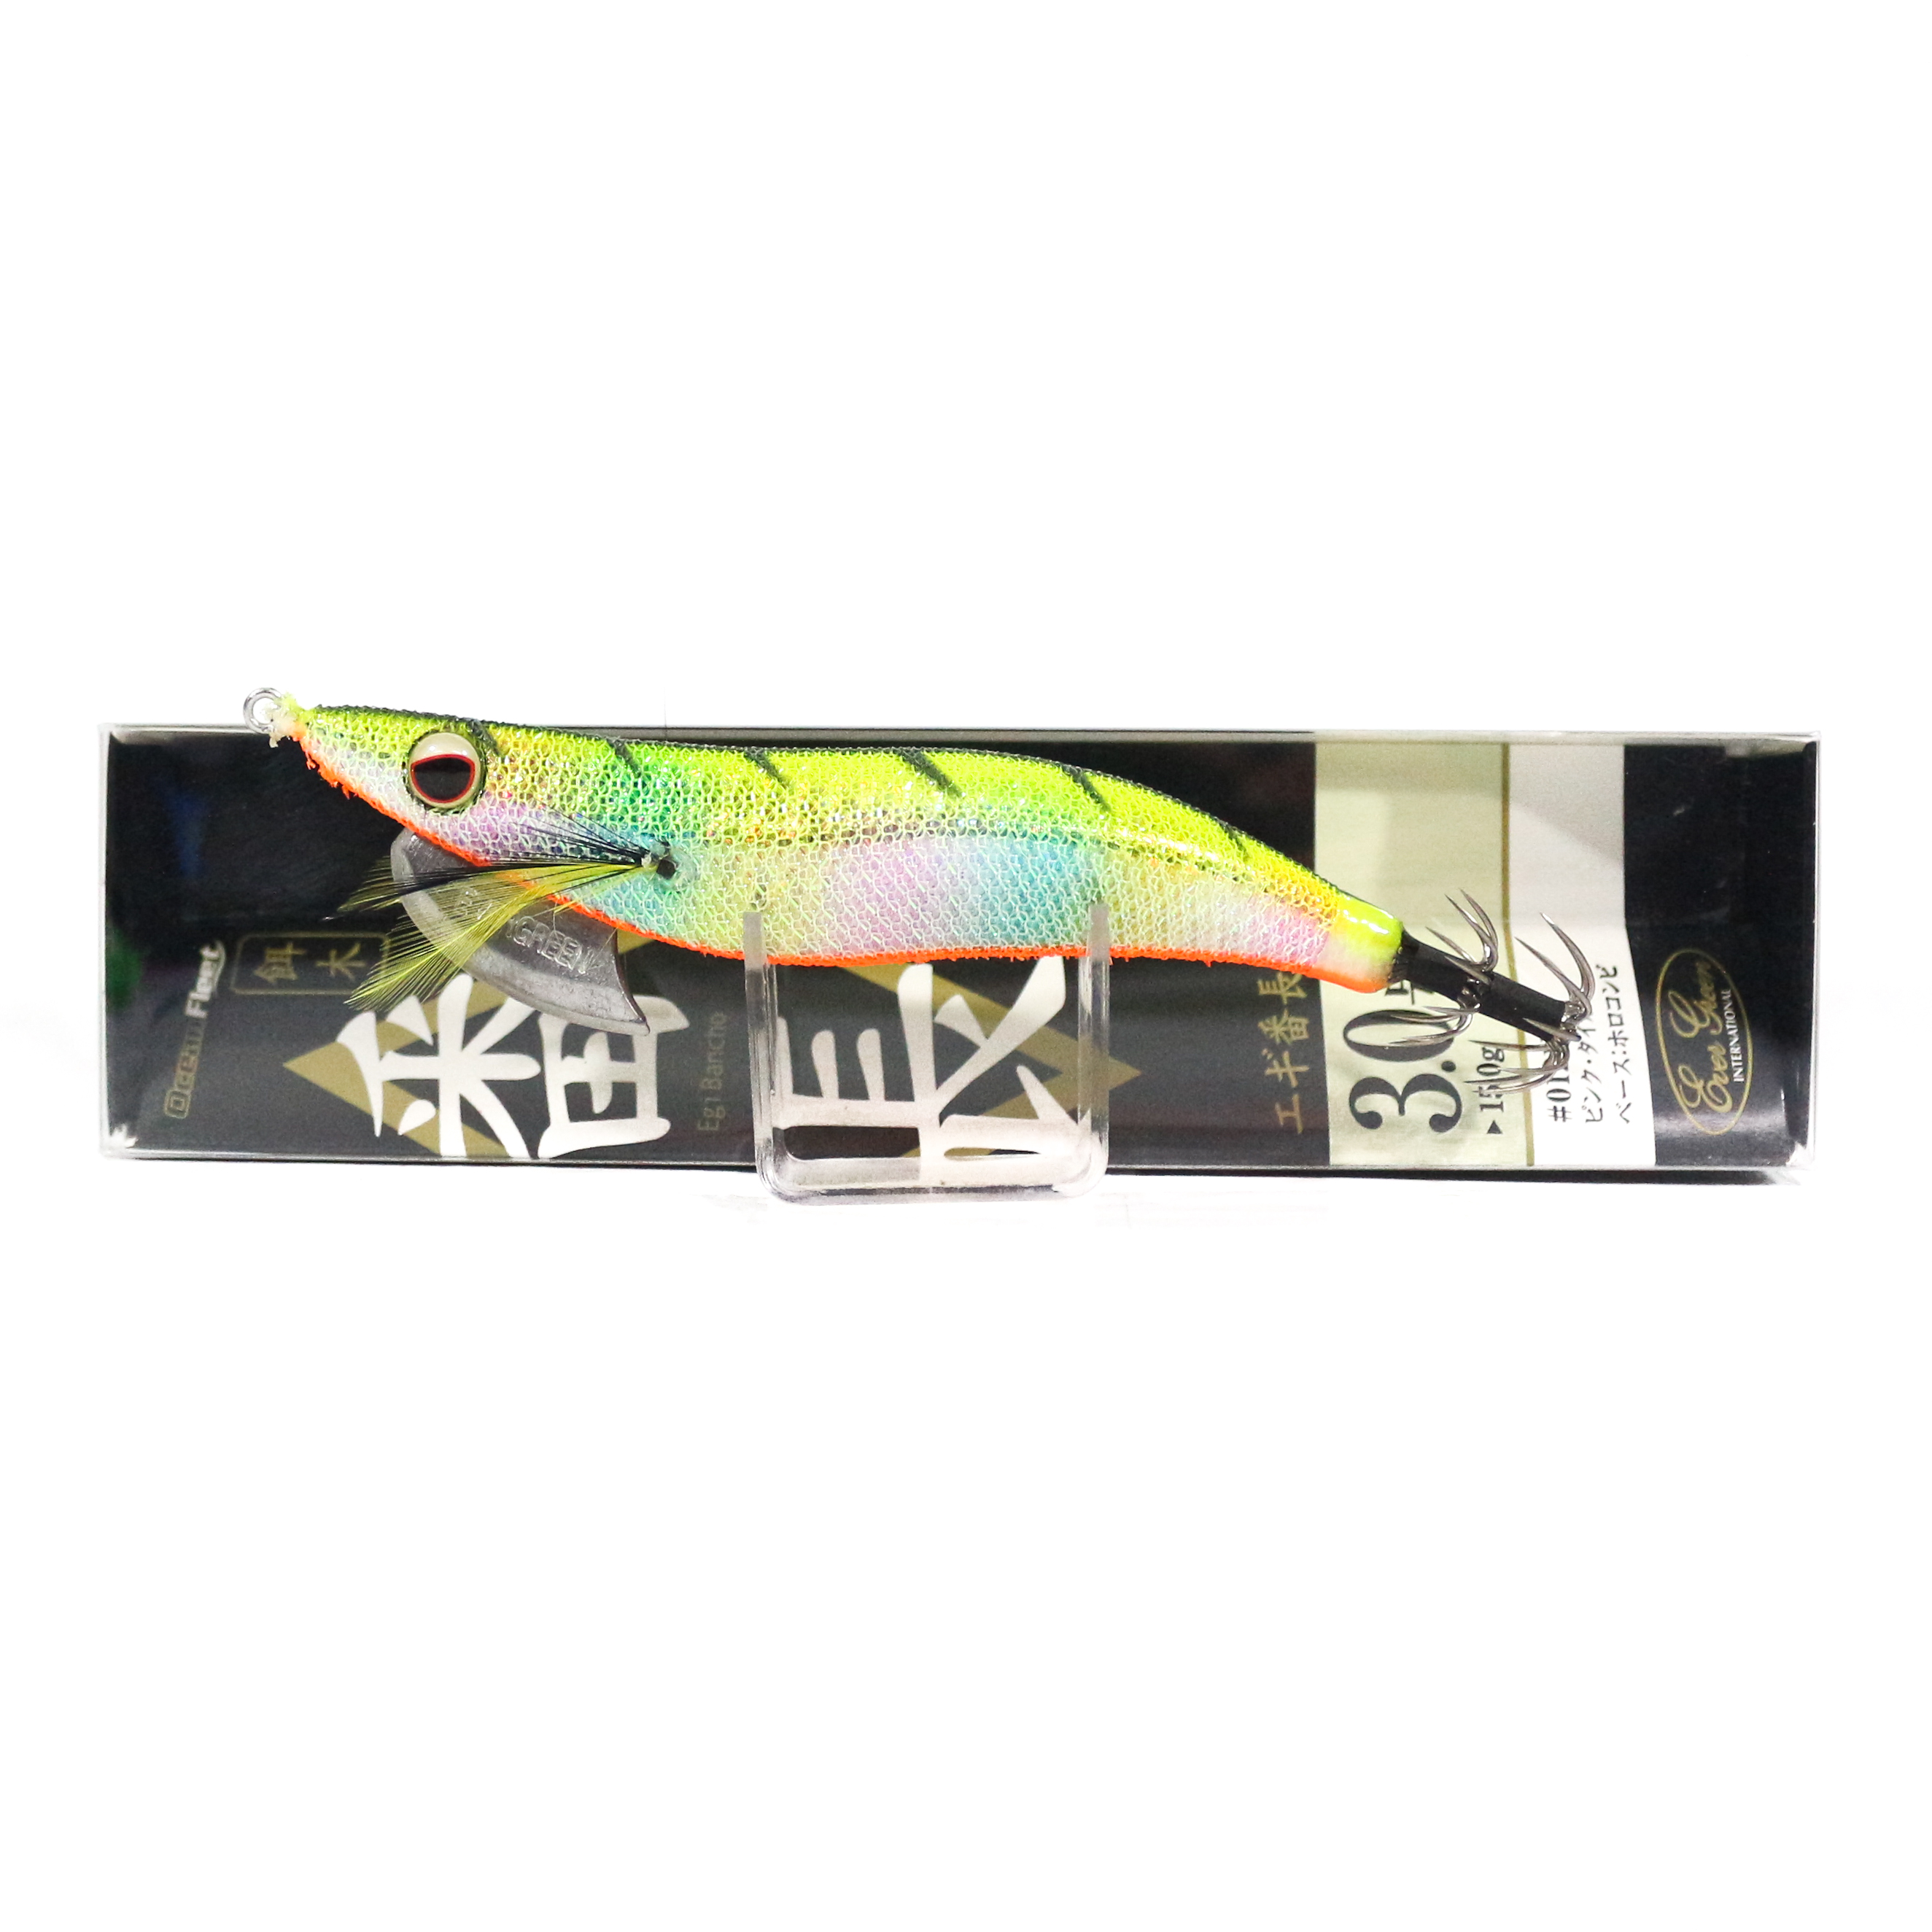 Evergreen Ocean Fleet Custom Squid Jig Lure 3.0 UV0802HM (0020)